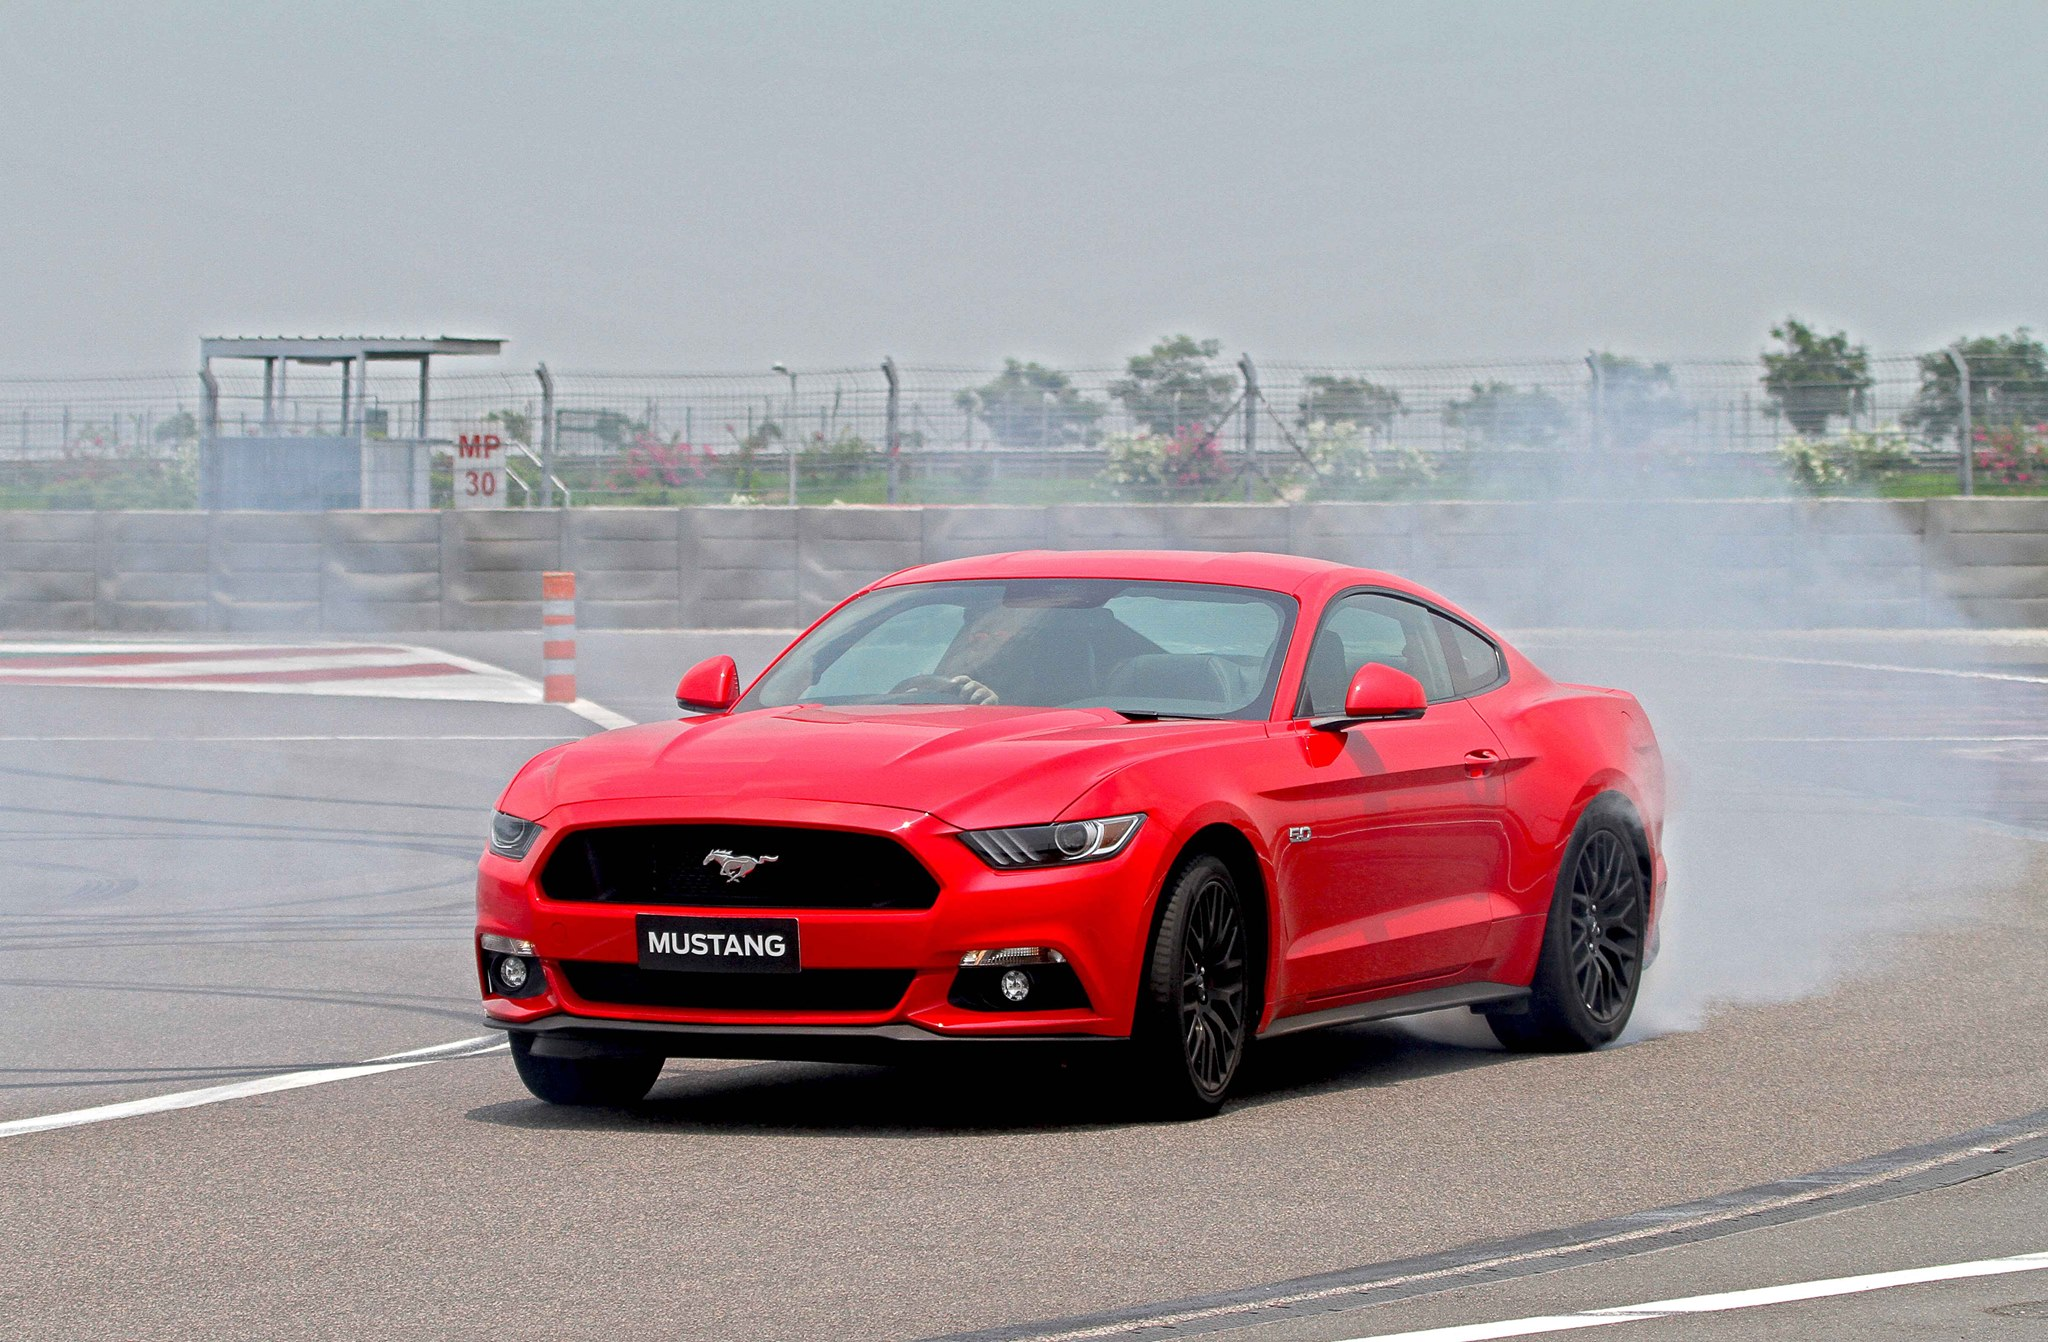 Ford mustang gt india front pictures images photos snaps video